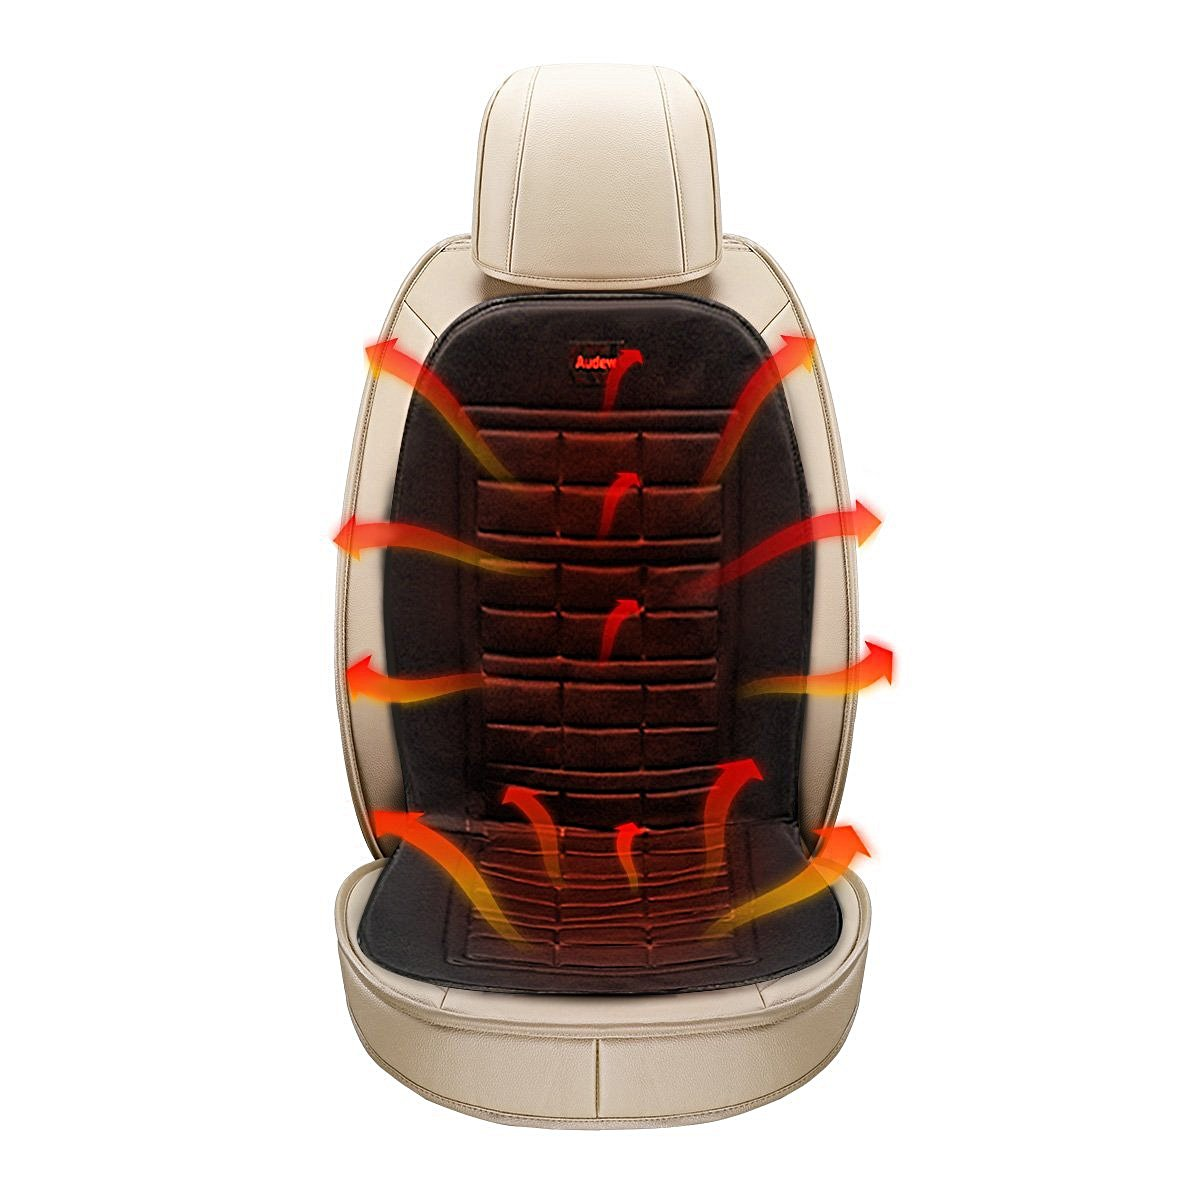 Heated Seat Cushion 12-Volt Padded Thermal Release for Car SUV Van Truck /& Office Chair BDK SC-056 Travel Warmer